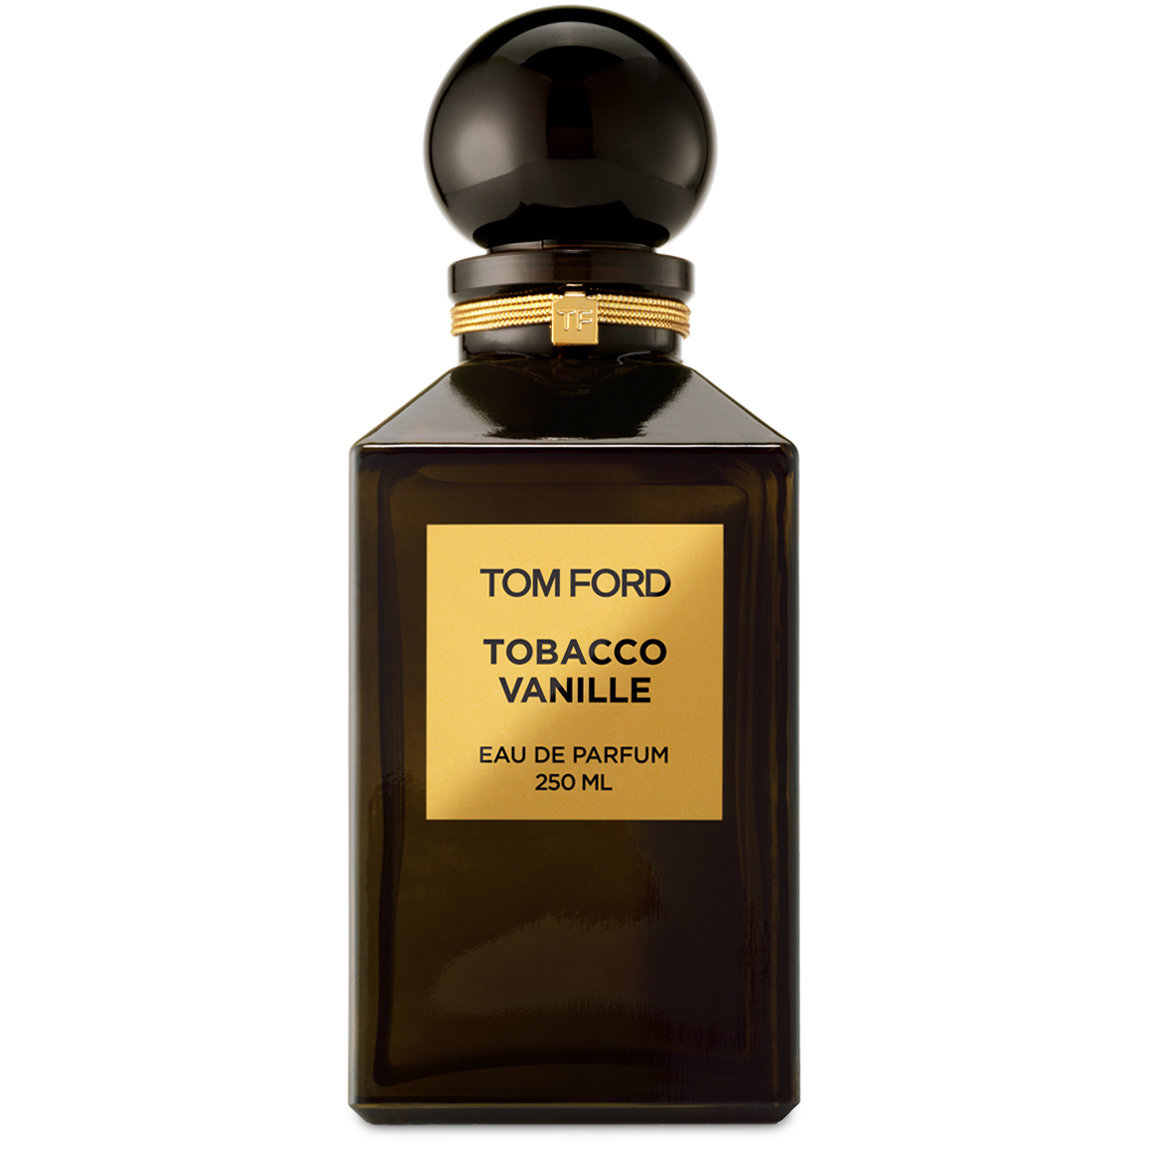 TOM FORD Tobacco Vanille 250 ml product swatch.